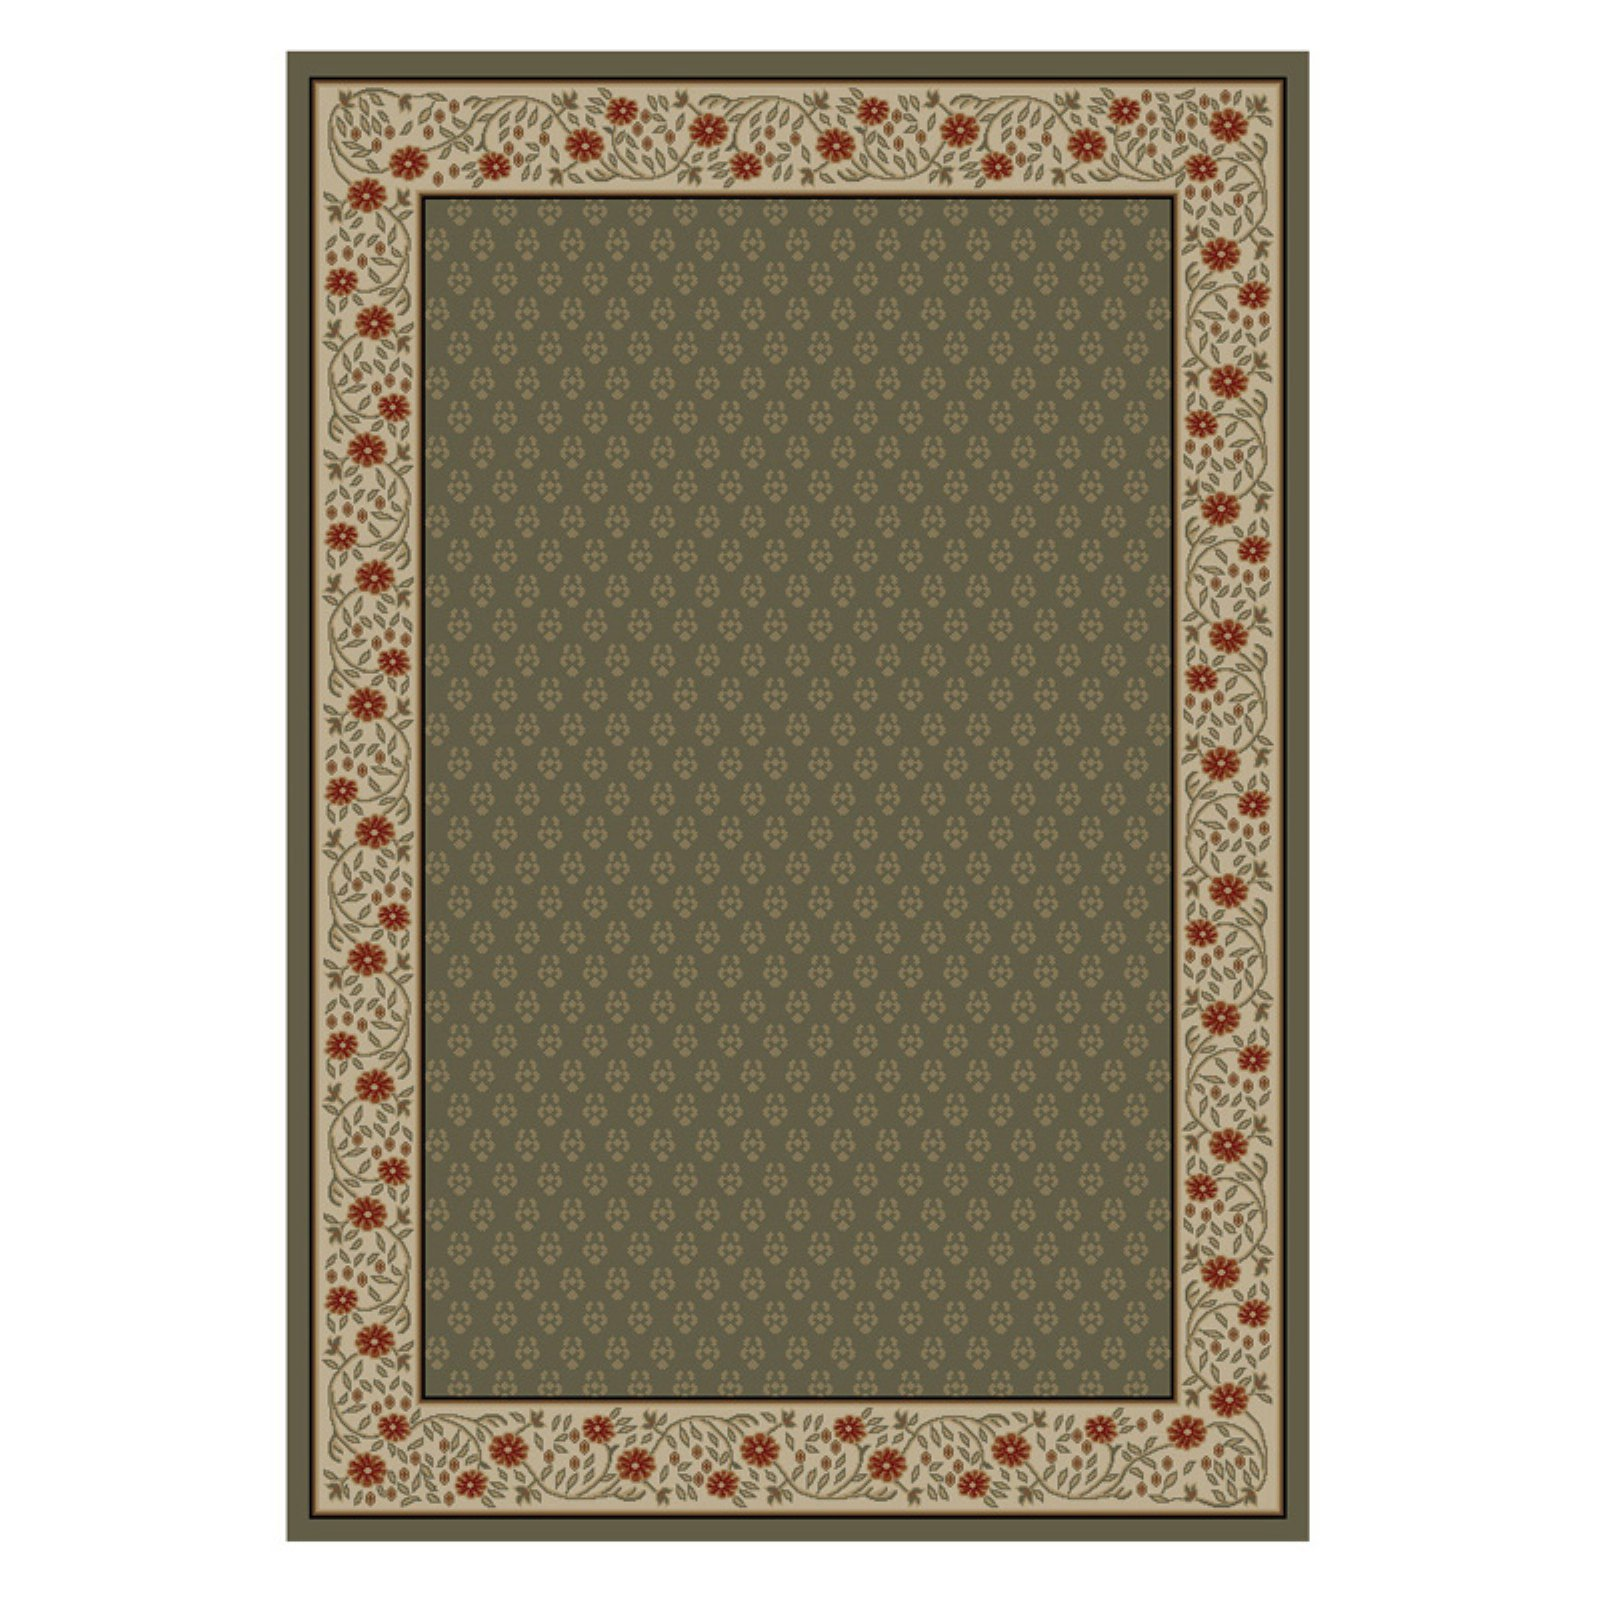 Well Woven Barclay Terrazzo Transitional Area/Round Rug